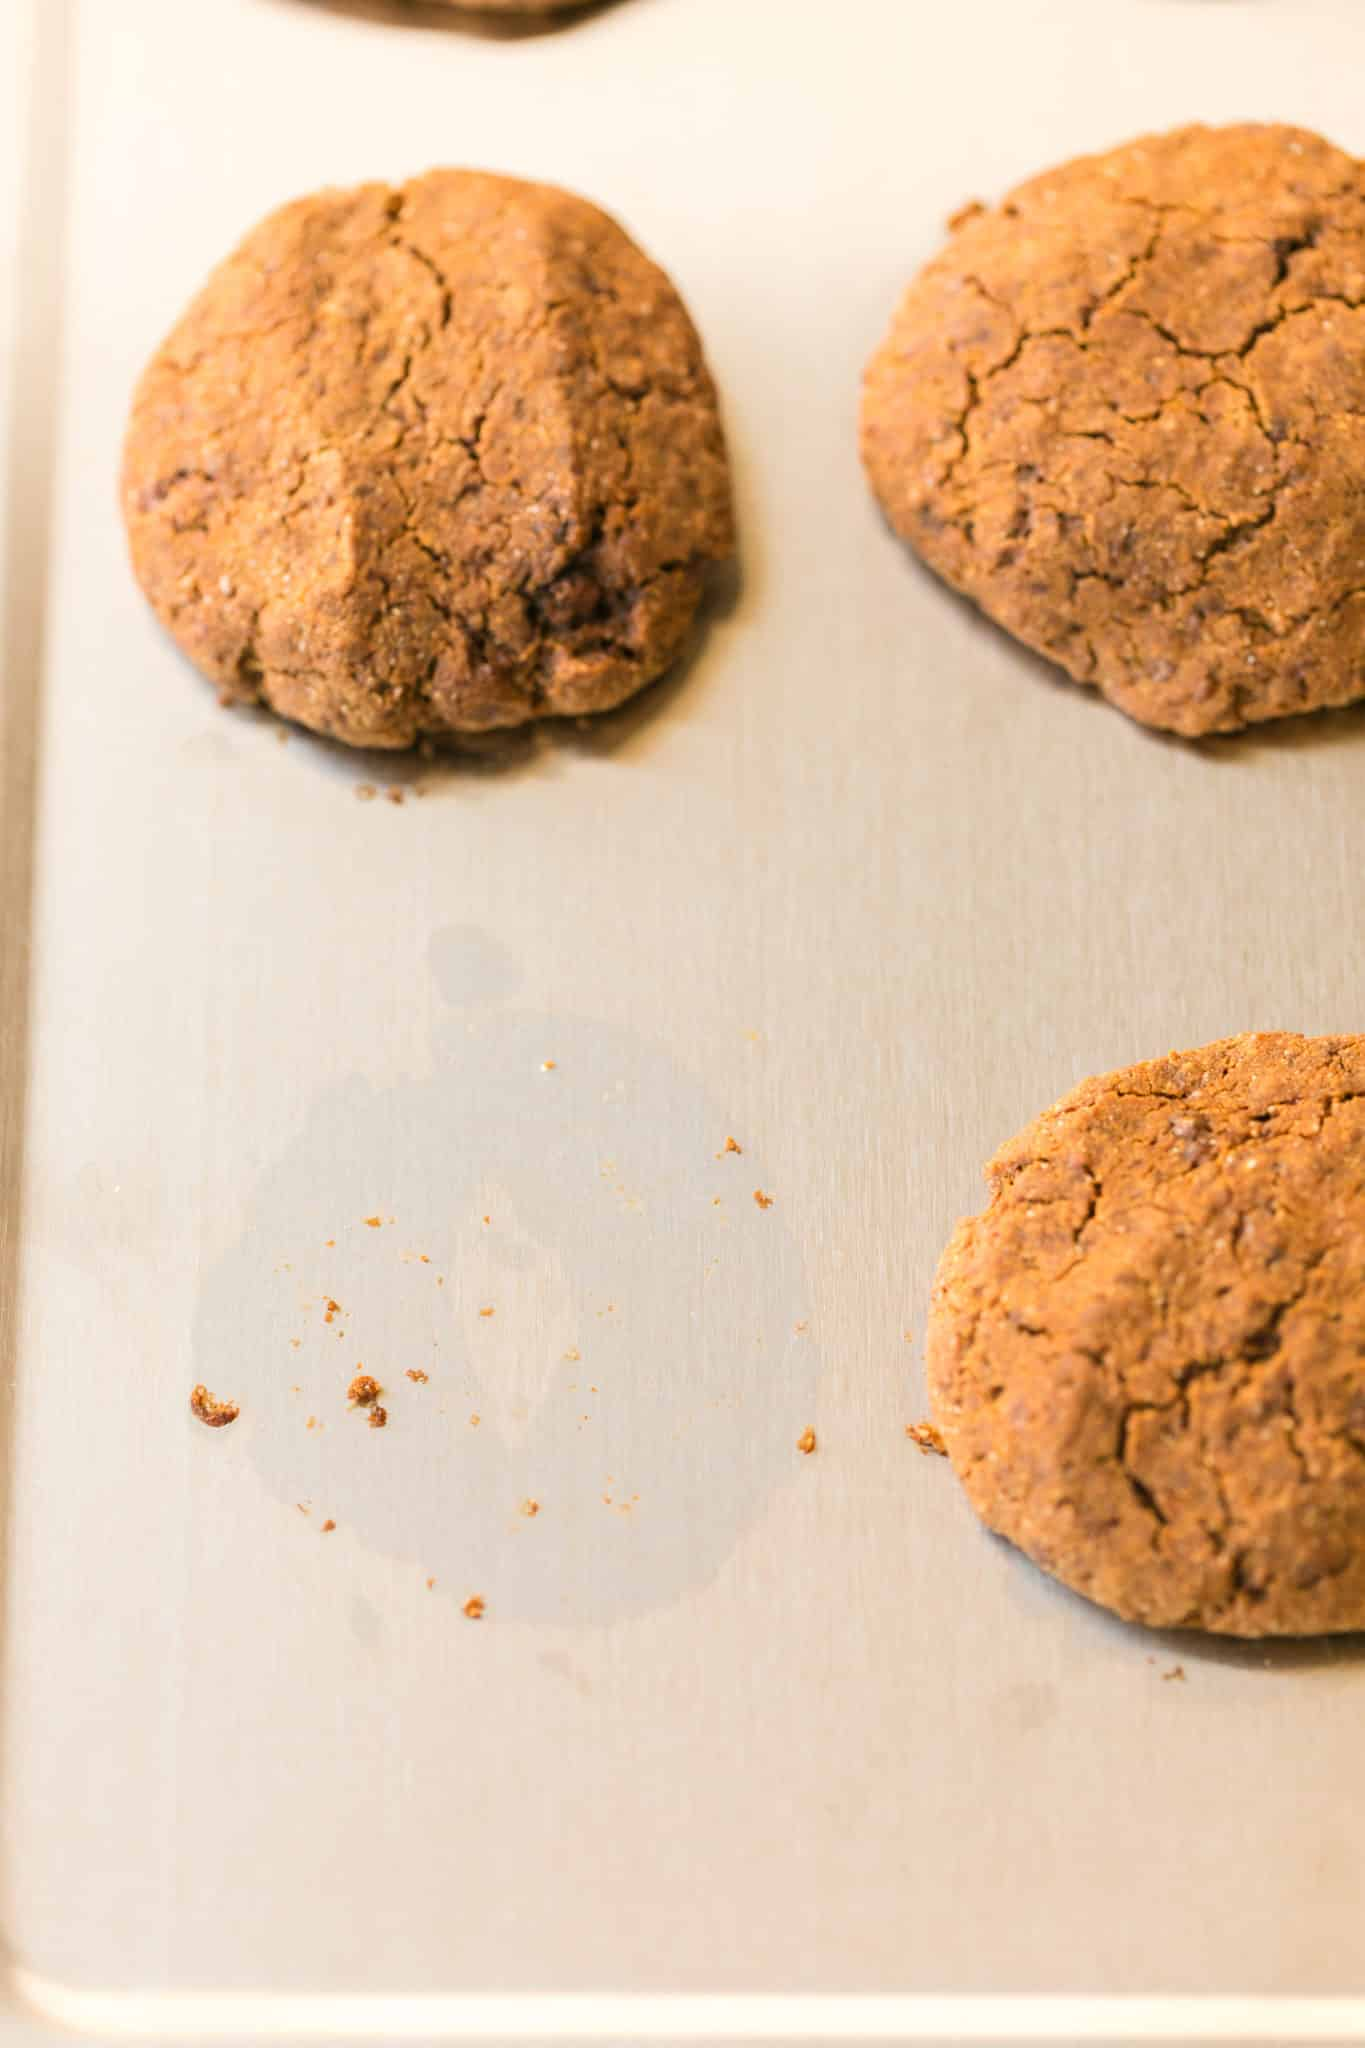 molasses cookies cooling on a stainless steel baking sheet